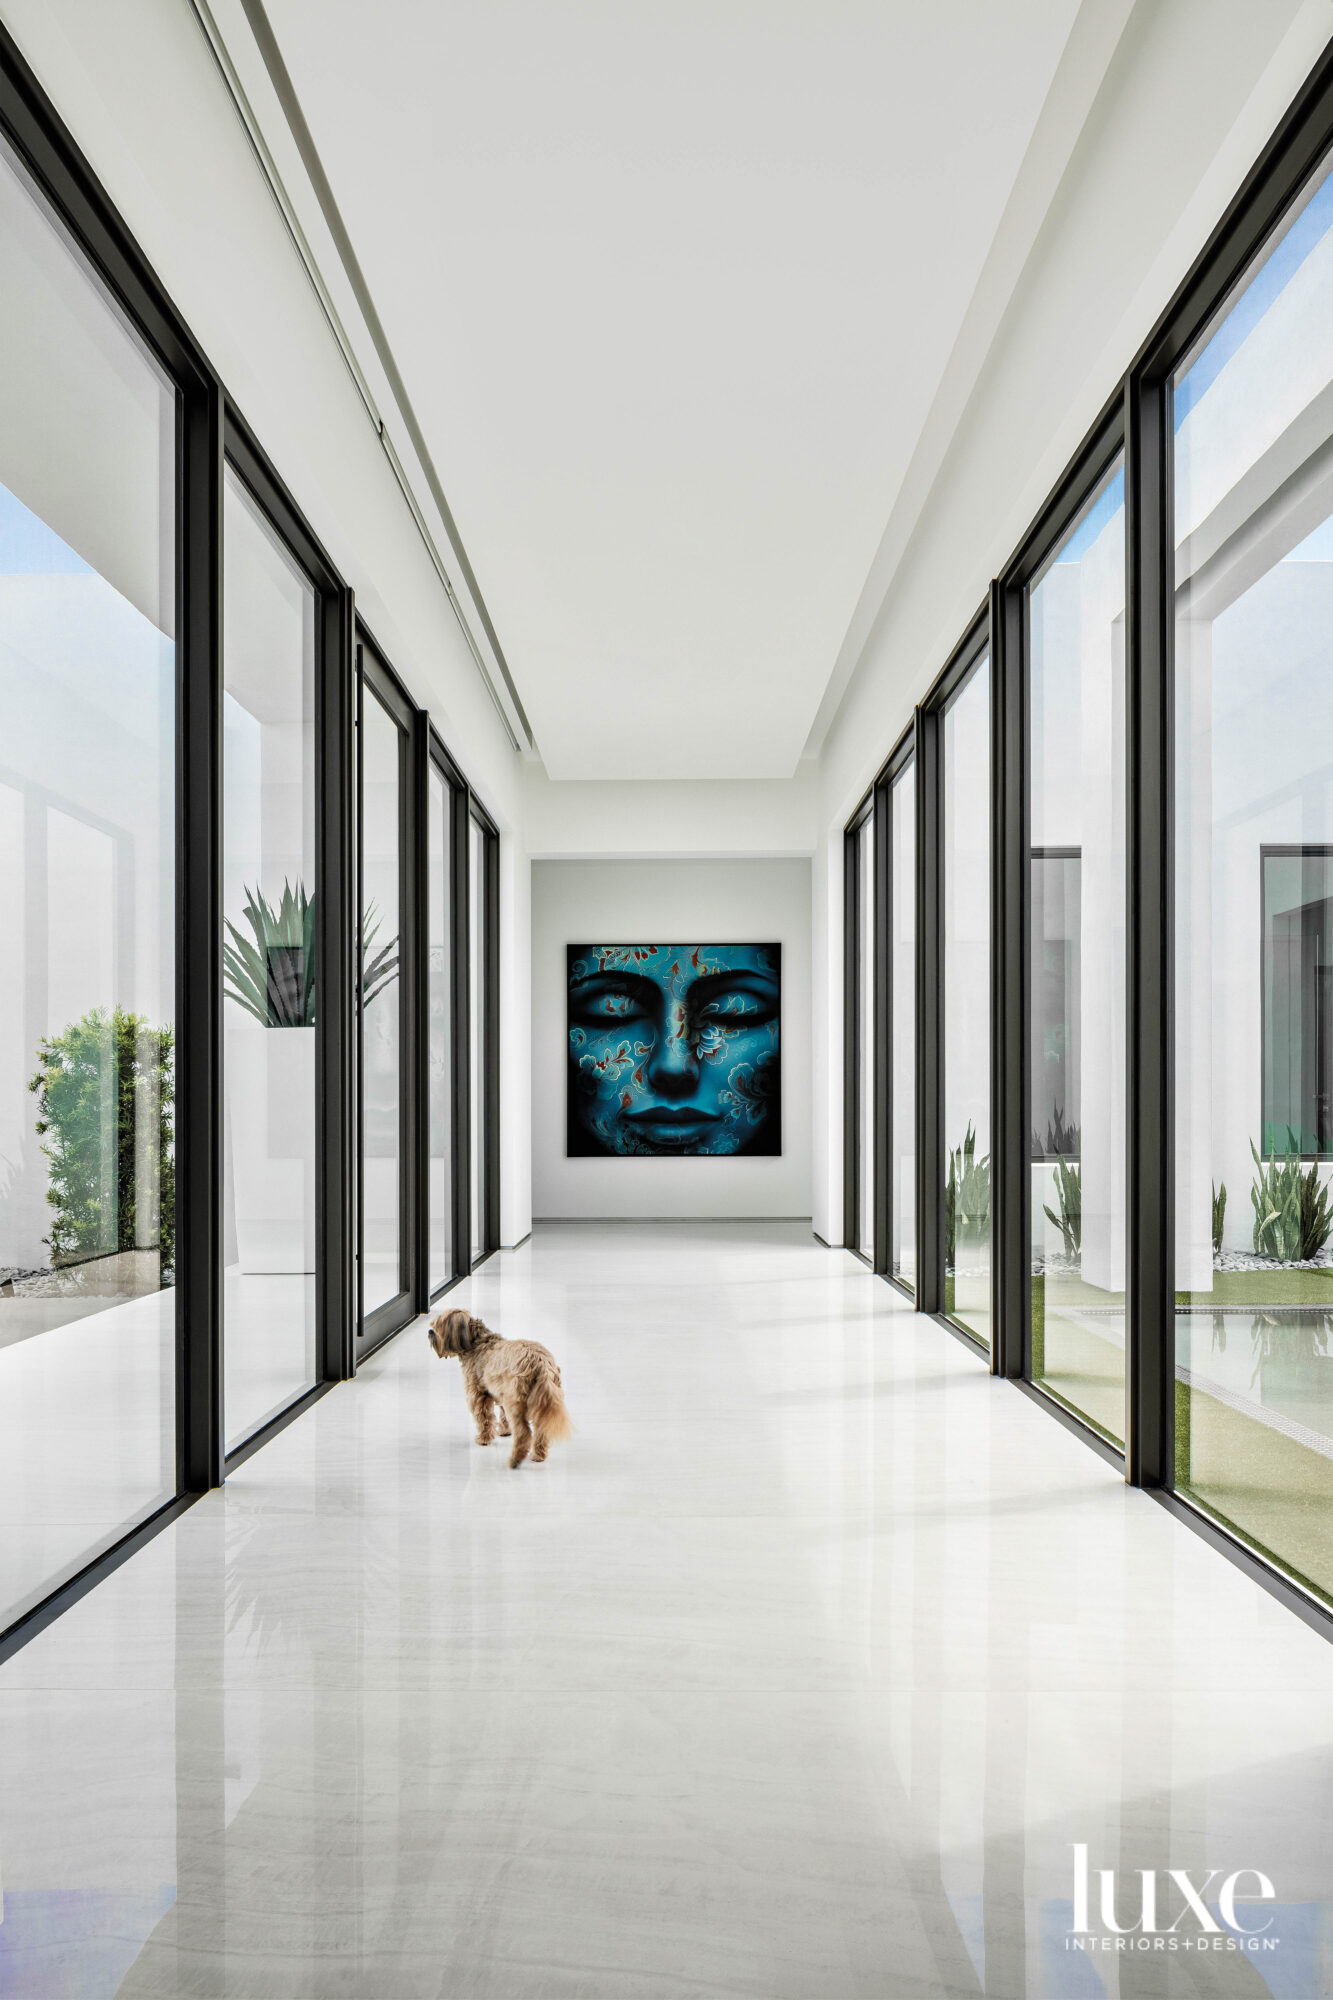 hallway with white porcelain flooring, glass walls, a dog and a blue wall artwork